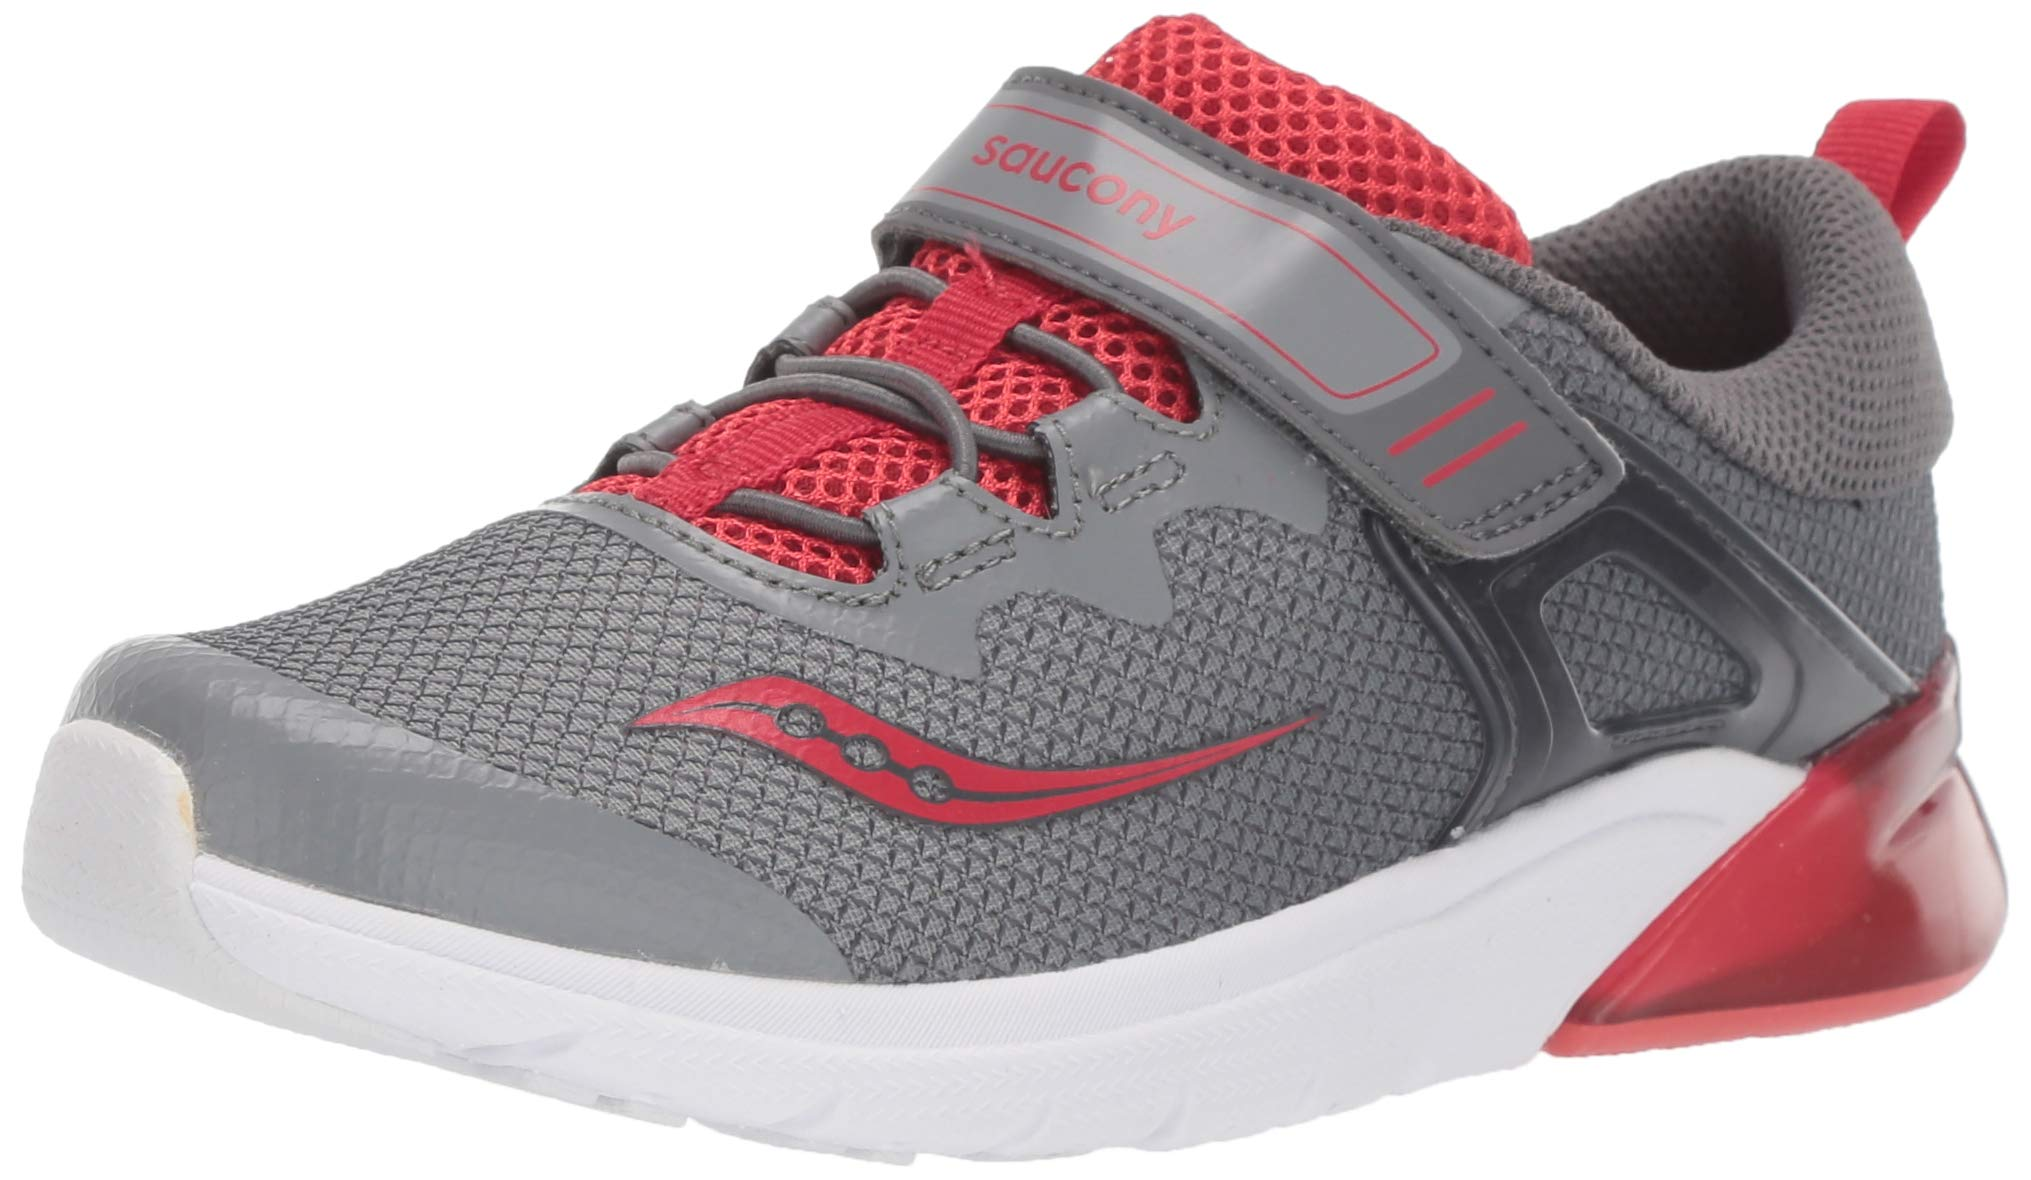 Saucony Boys' Flash Glow A/C Sneaker, Grey/Red, 2 M US Little Kid by Saucony